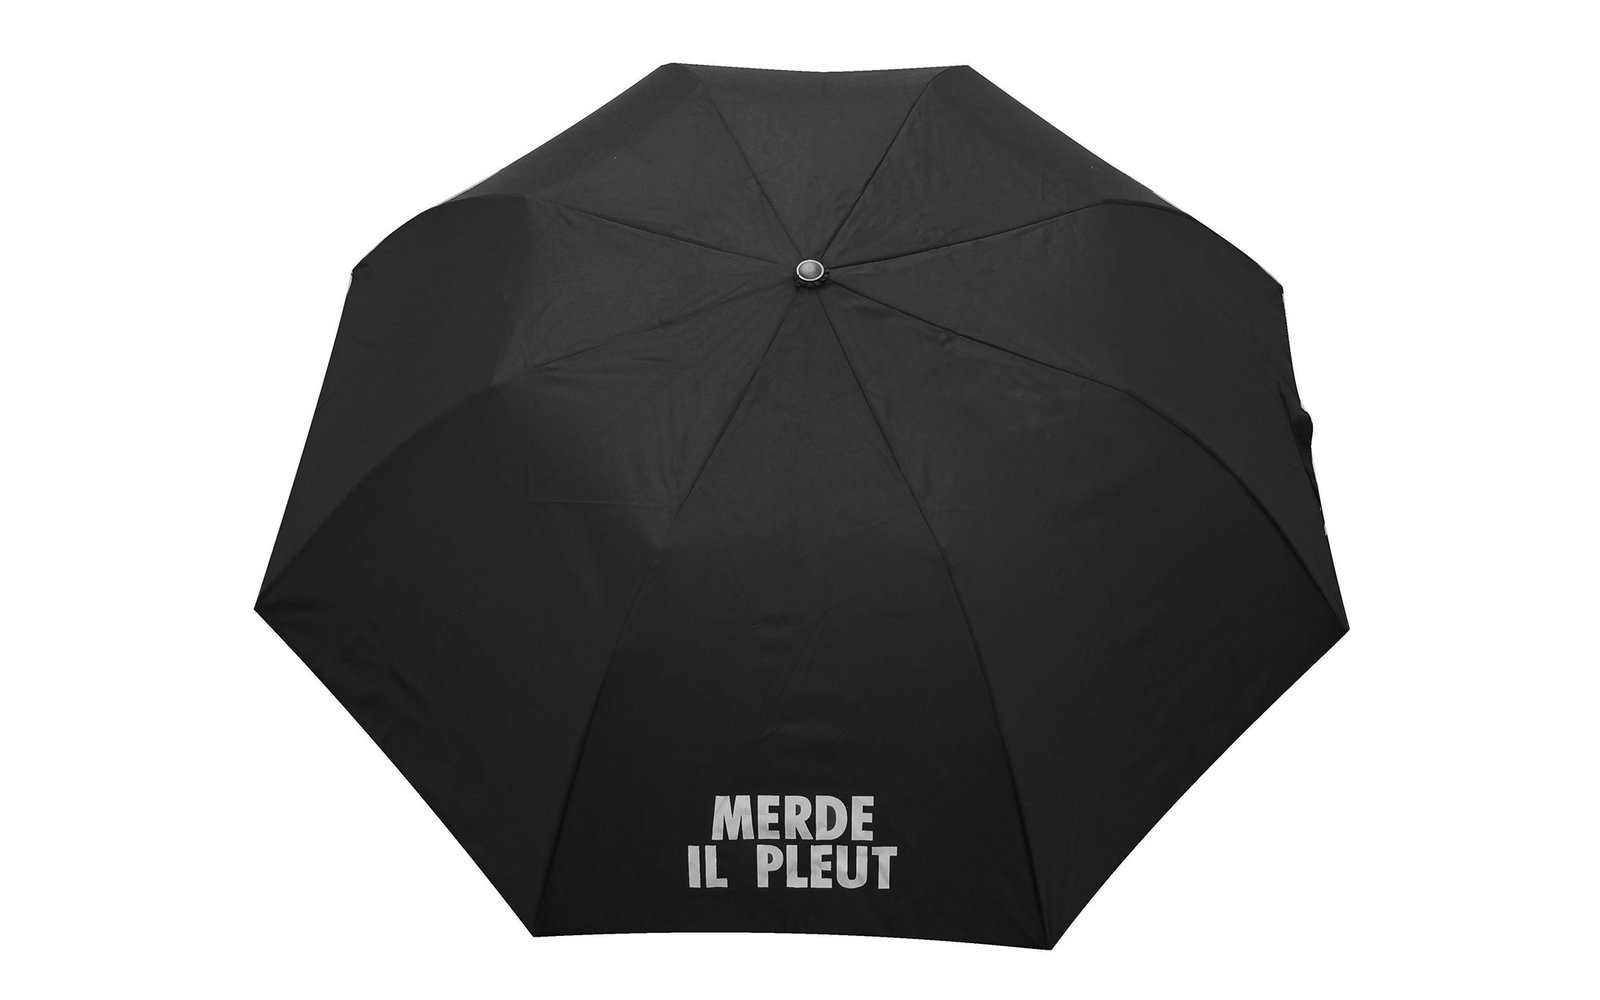 Merde Il Pleut Collapsible Umbrella